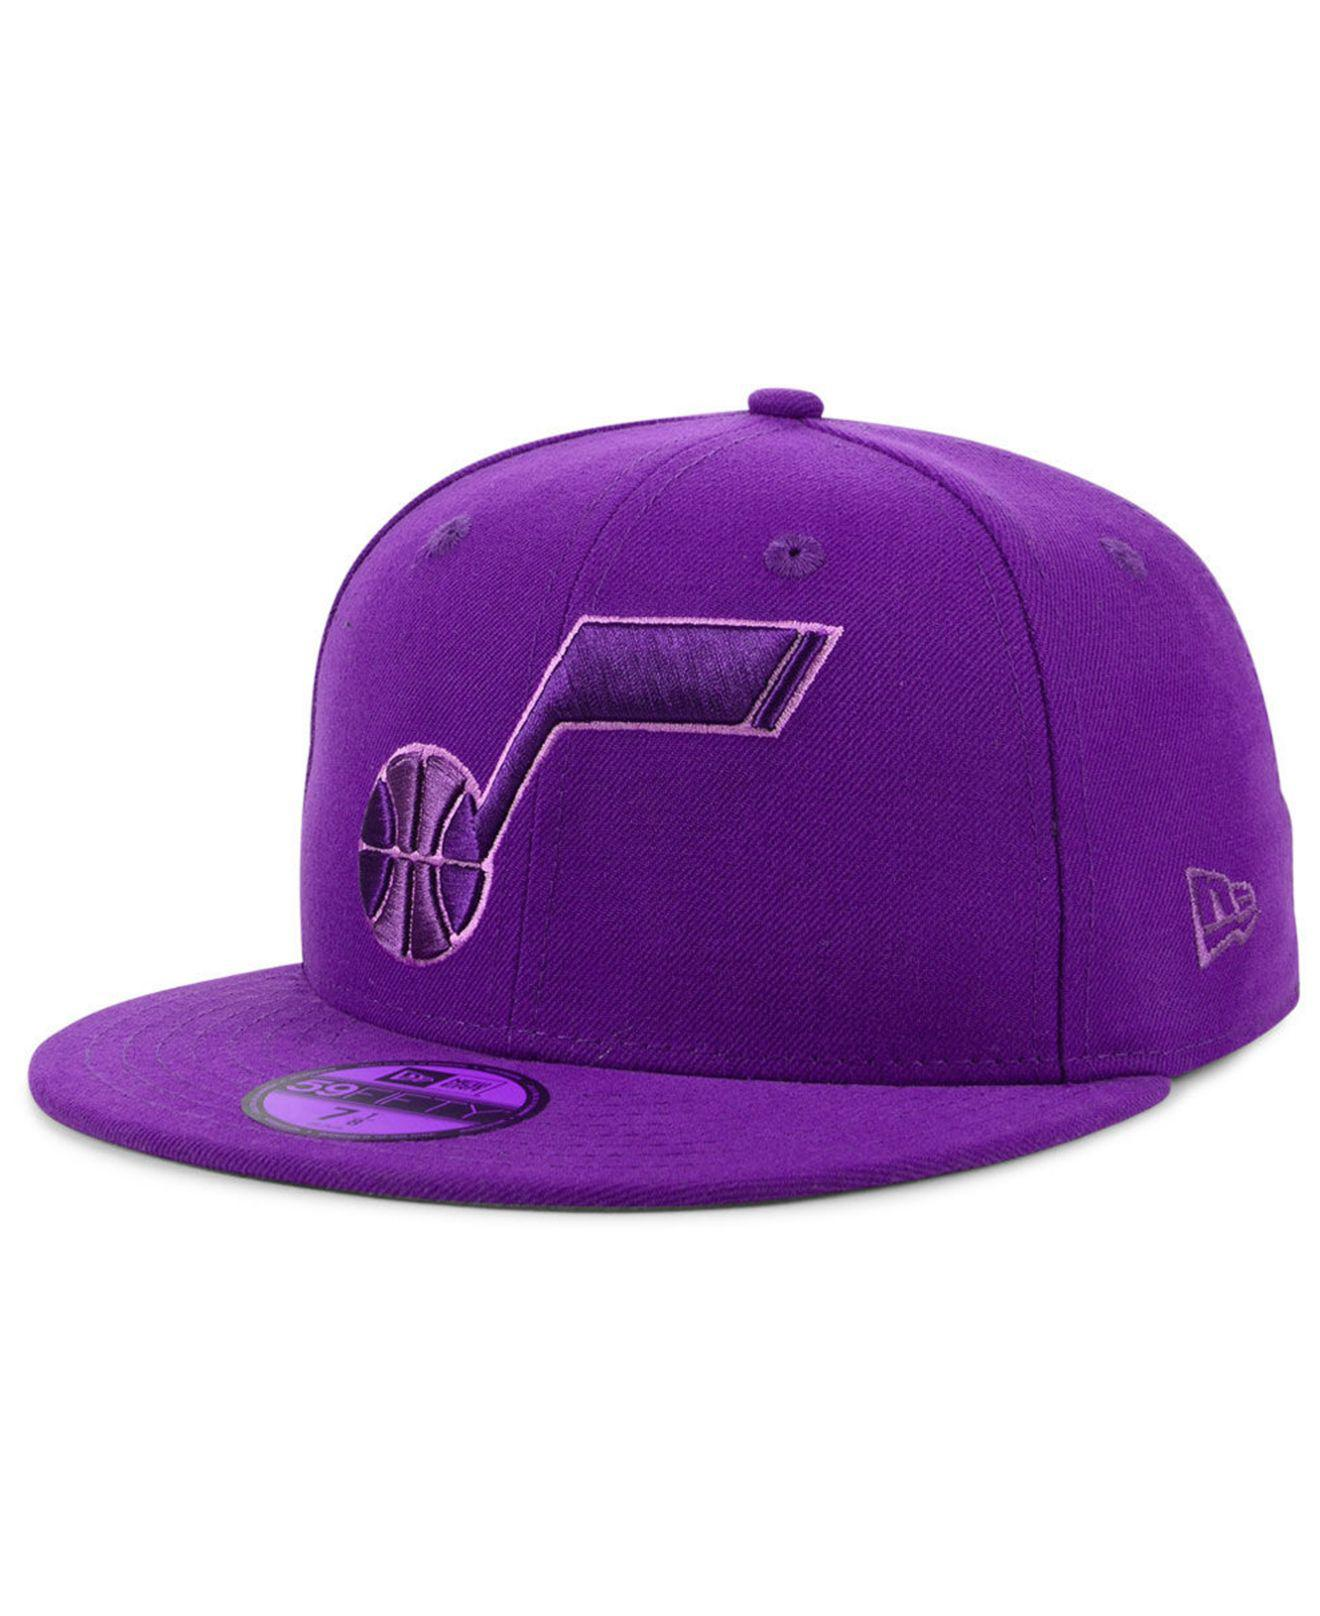 Lyst - Ktz Utah Jazz Color Prism Pack 59fifty Fitted Cap in Purple ... 5a39b4559